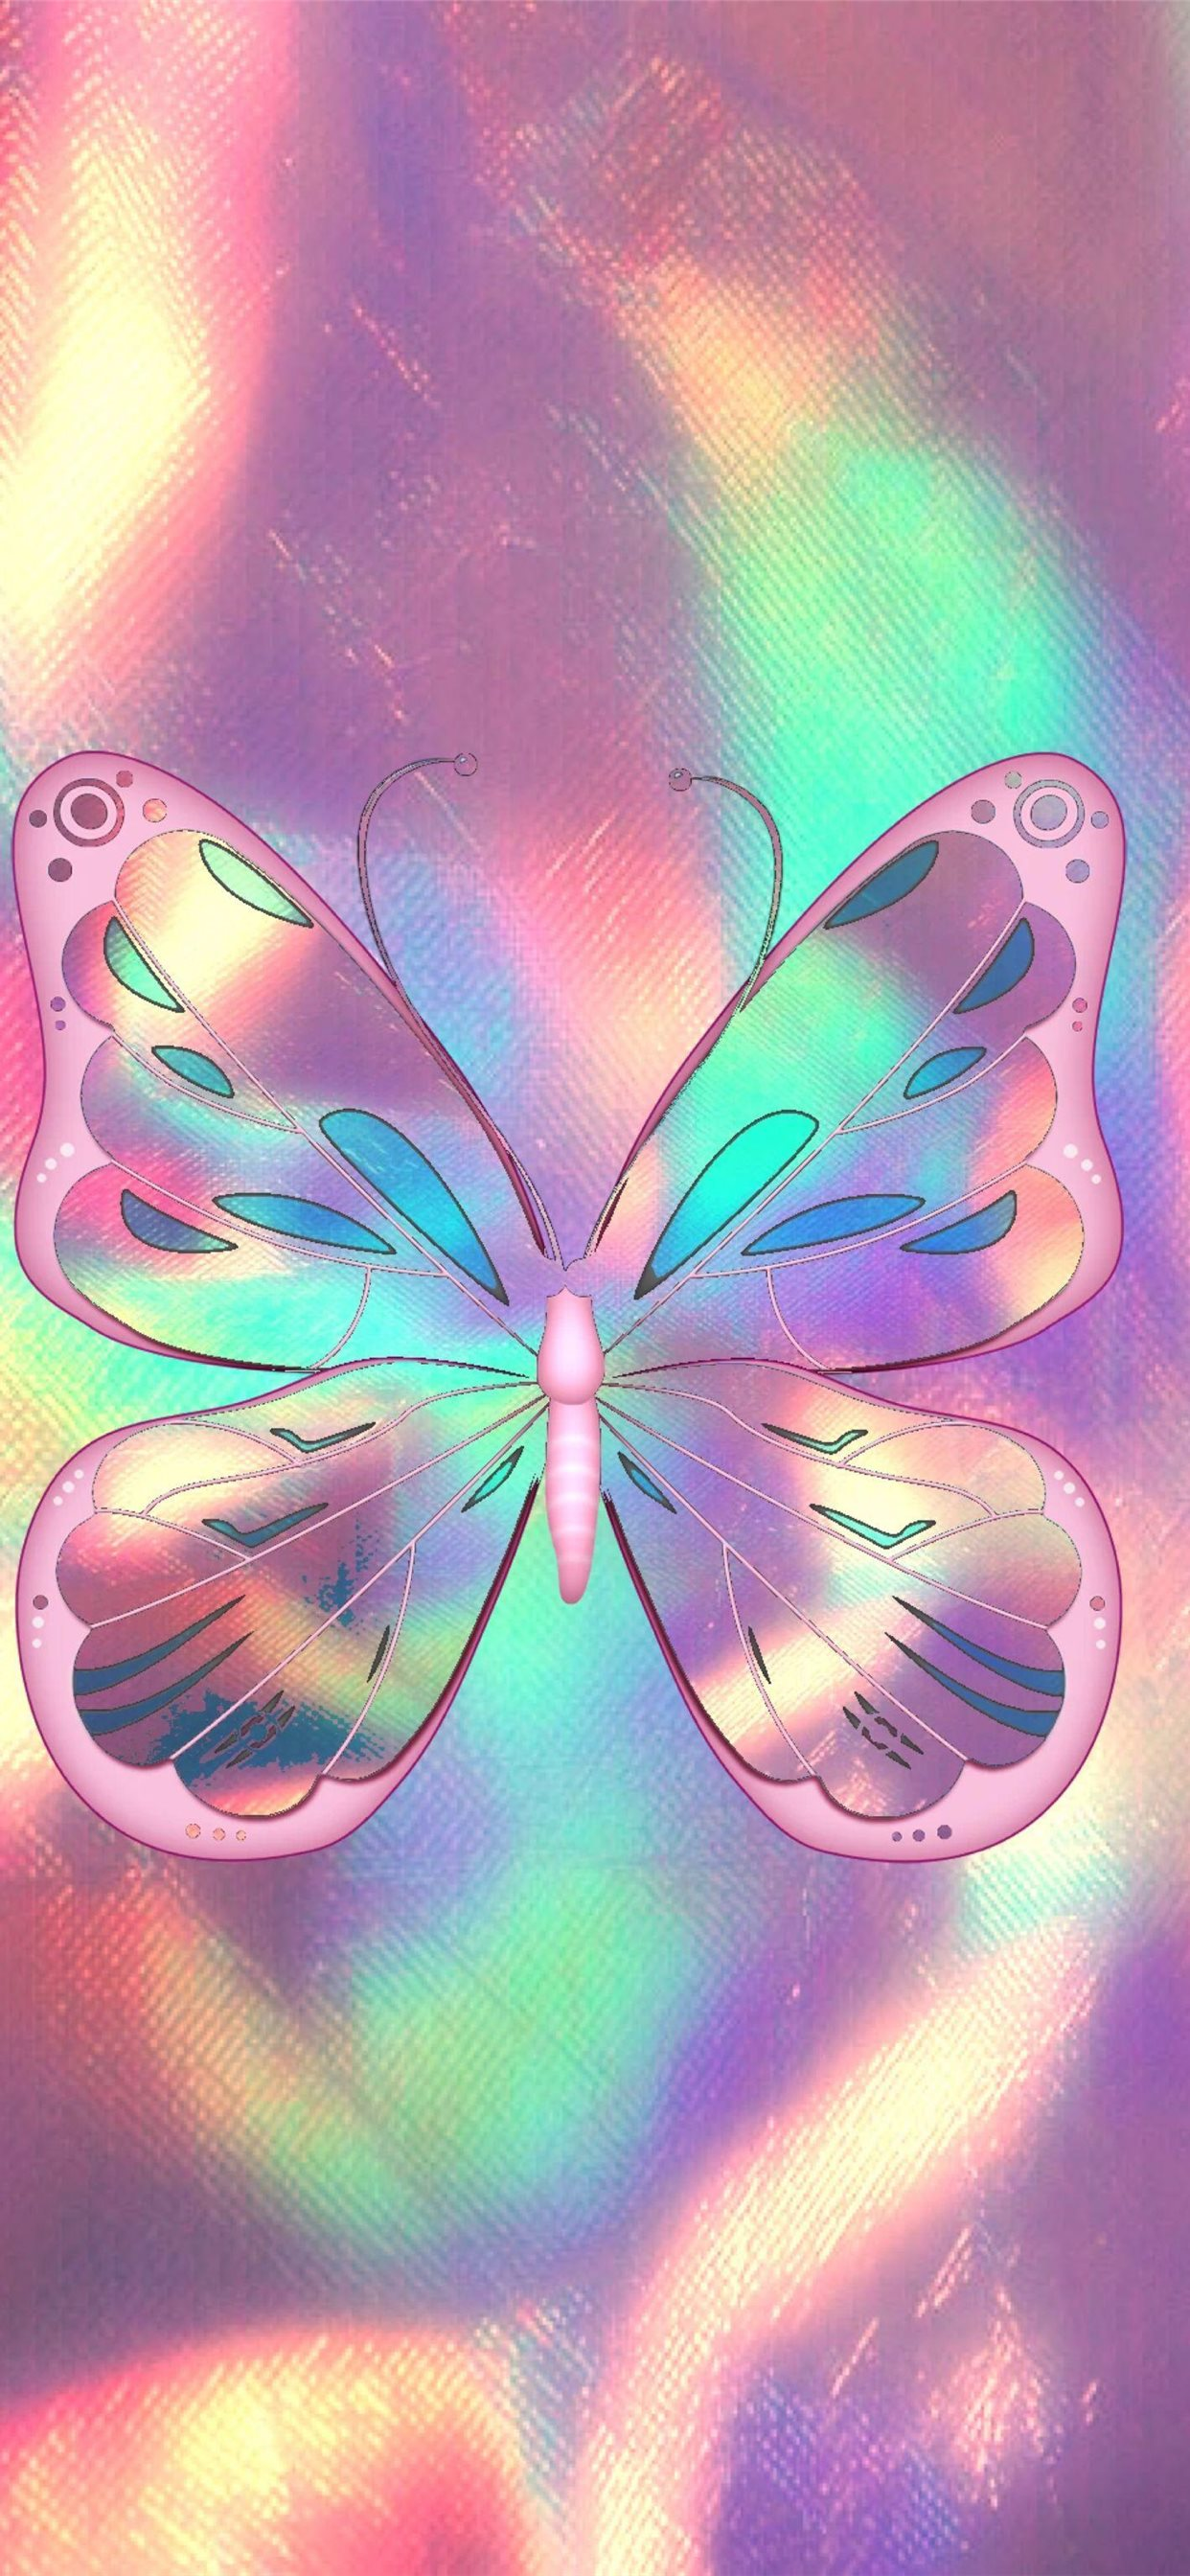 Butterfly Hd Iphone X Wallpapers Free Download